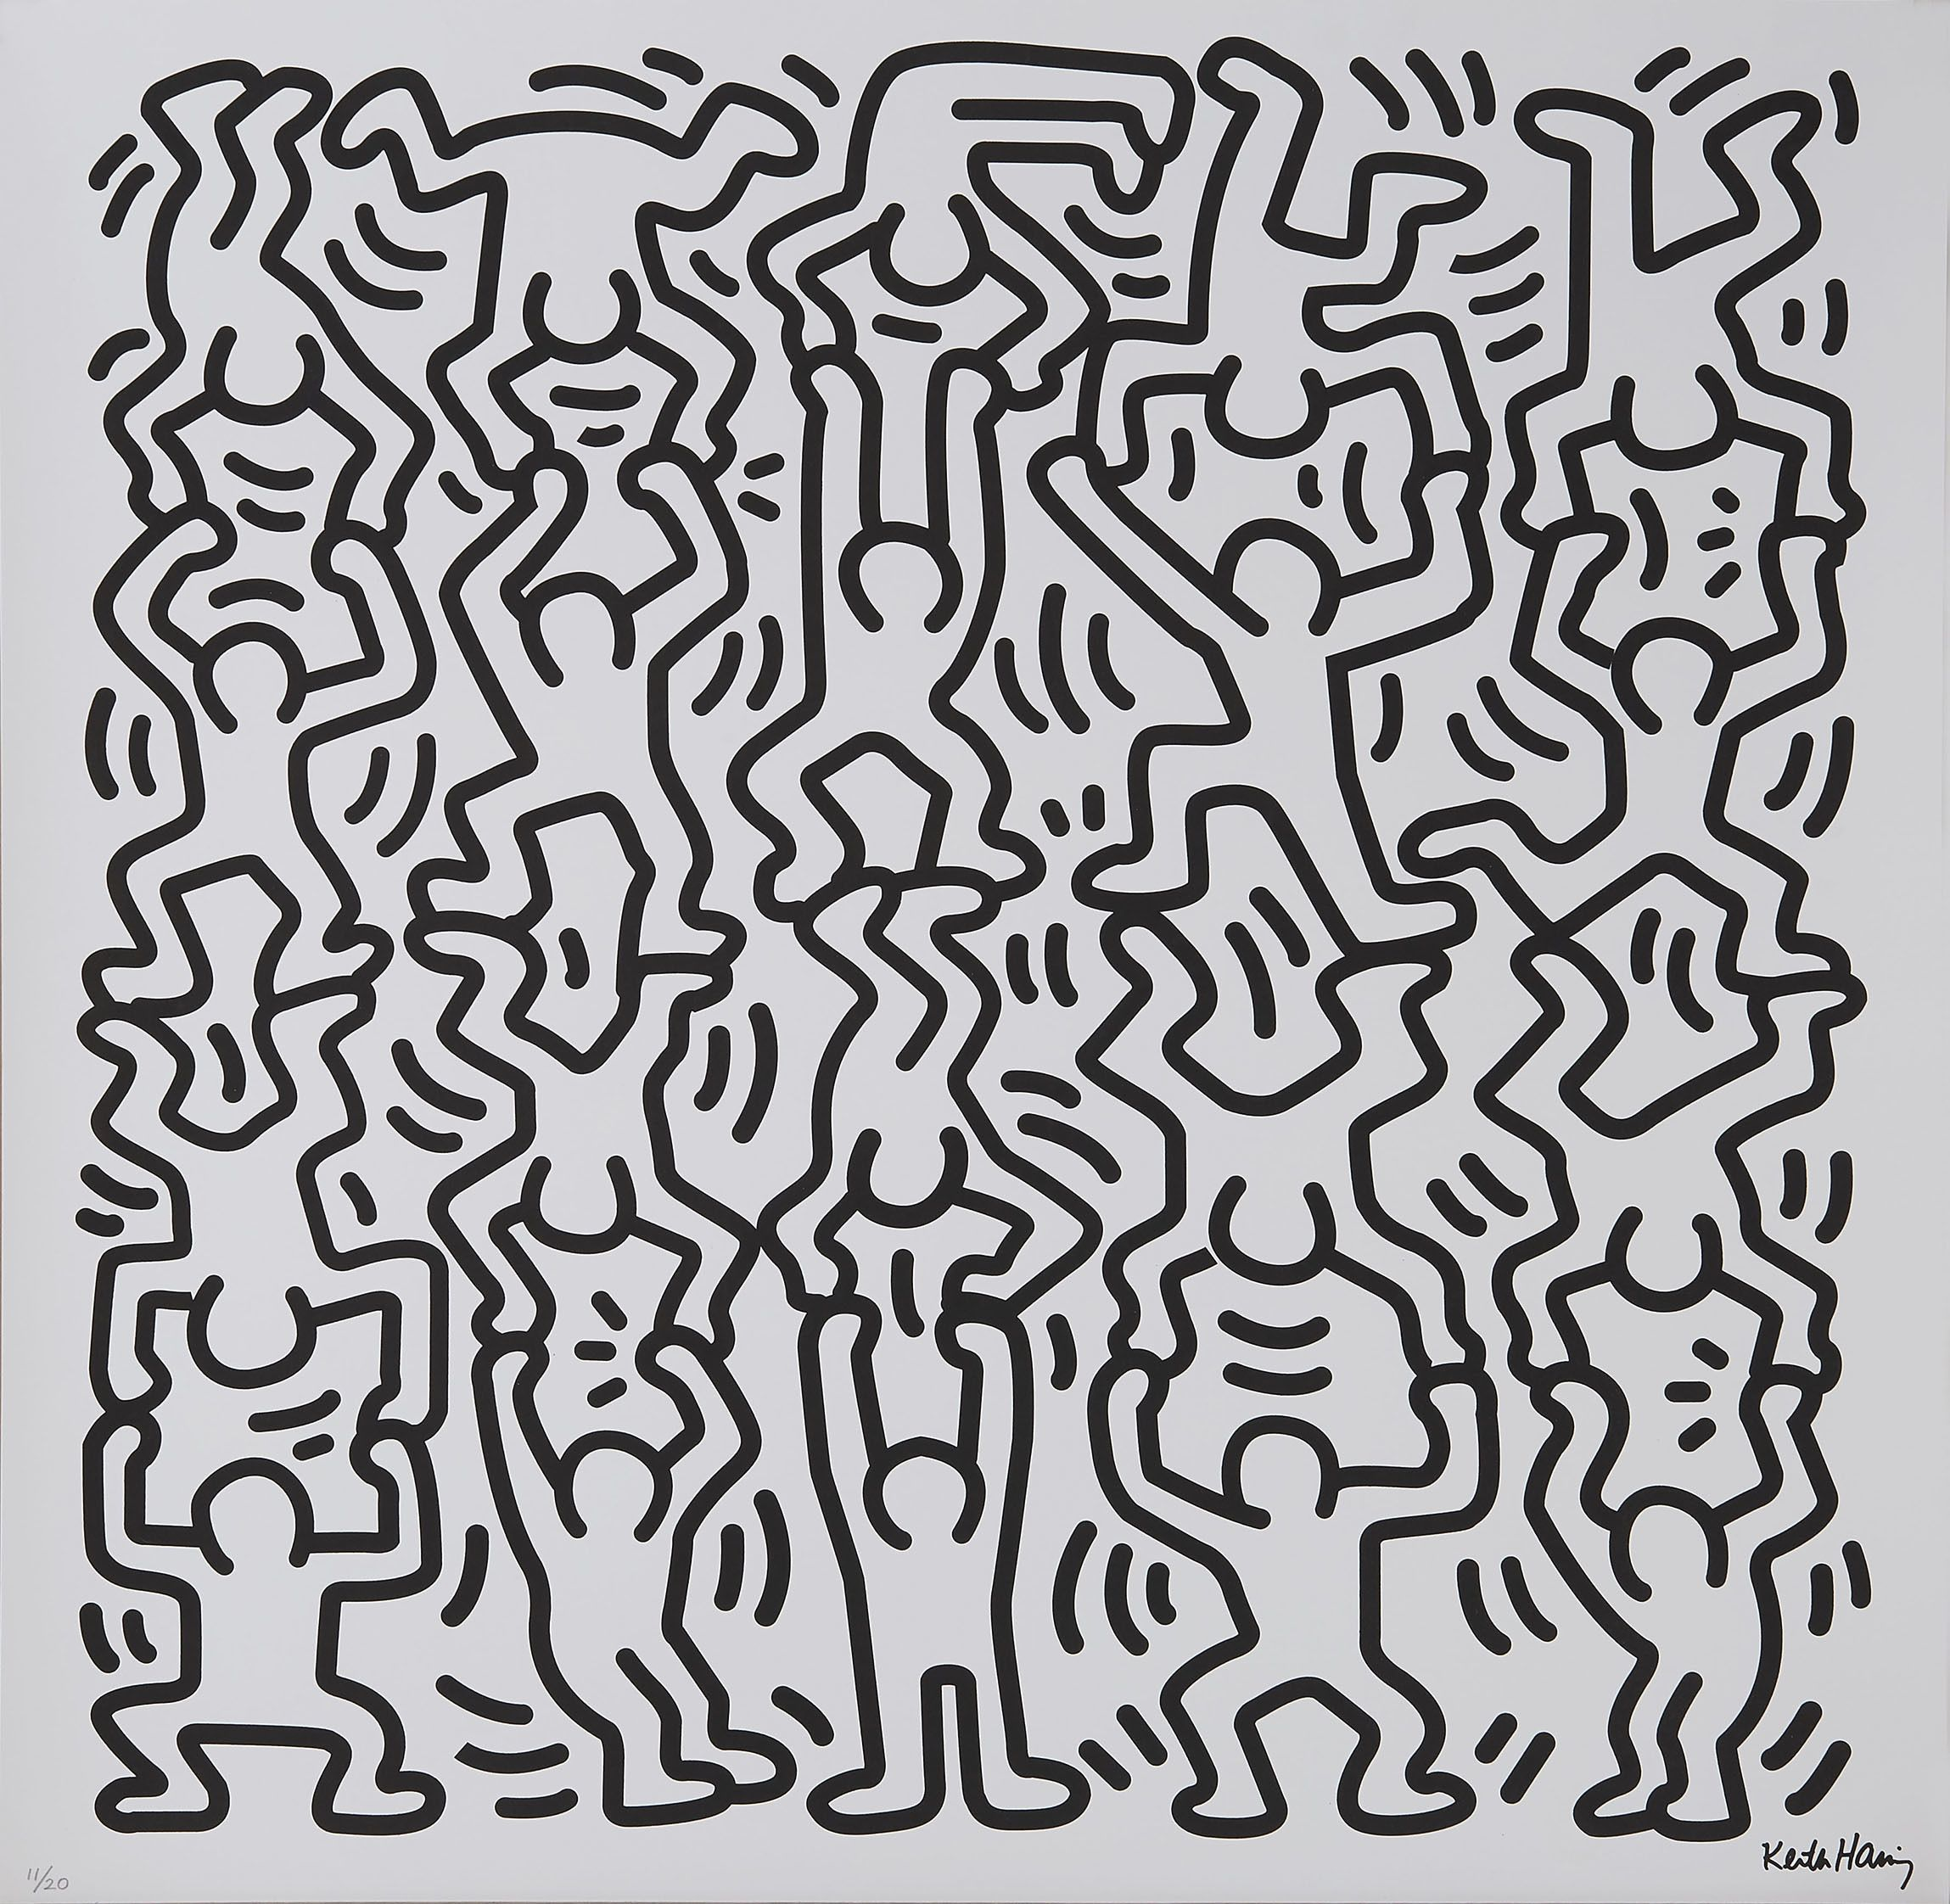 Haring Keith Titre Sanssans Titre Keith Haring Sans Titrekeith Haring Sans Titre Keith Haring Art Haring Art Keith Haring